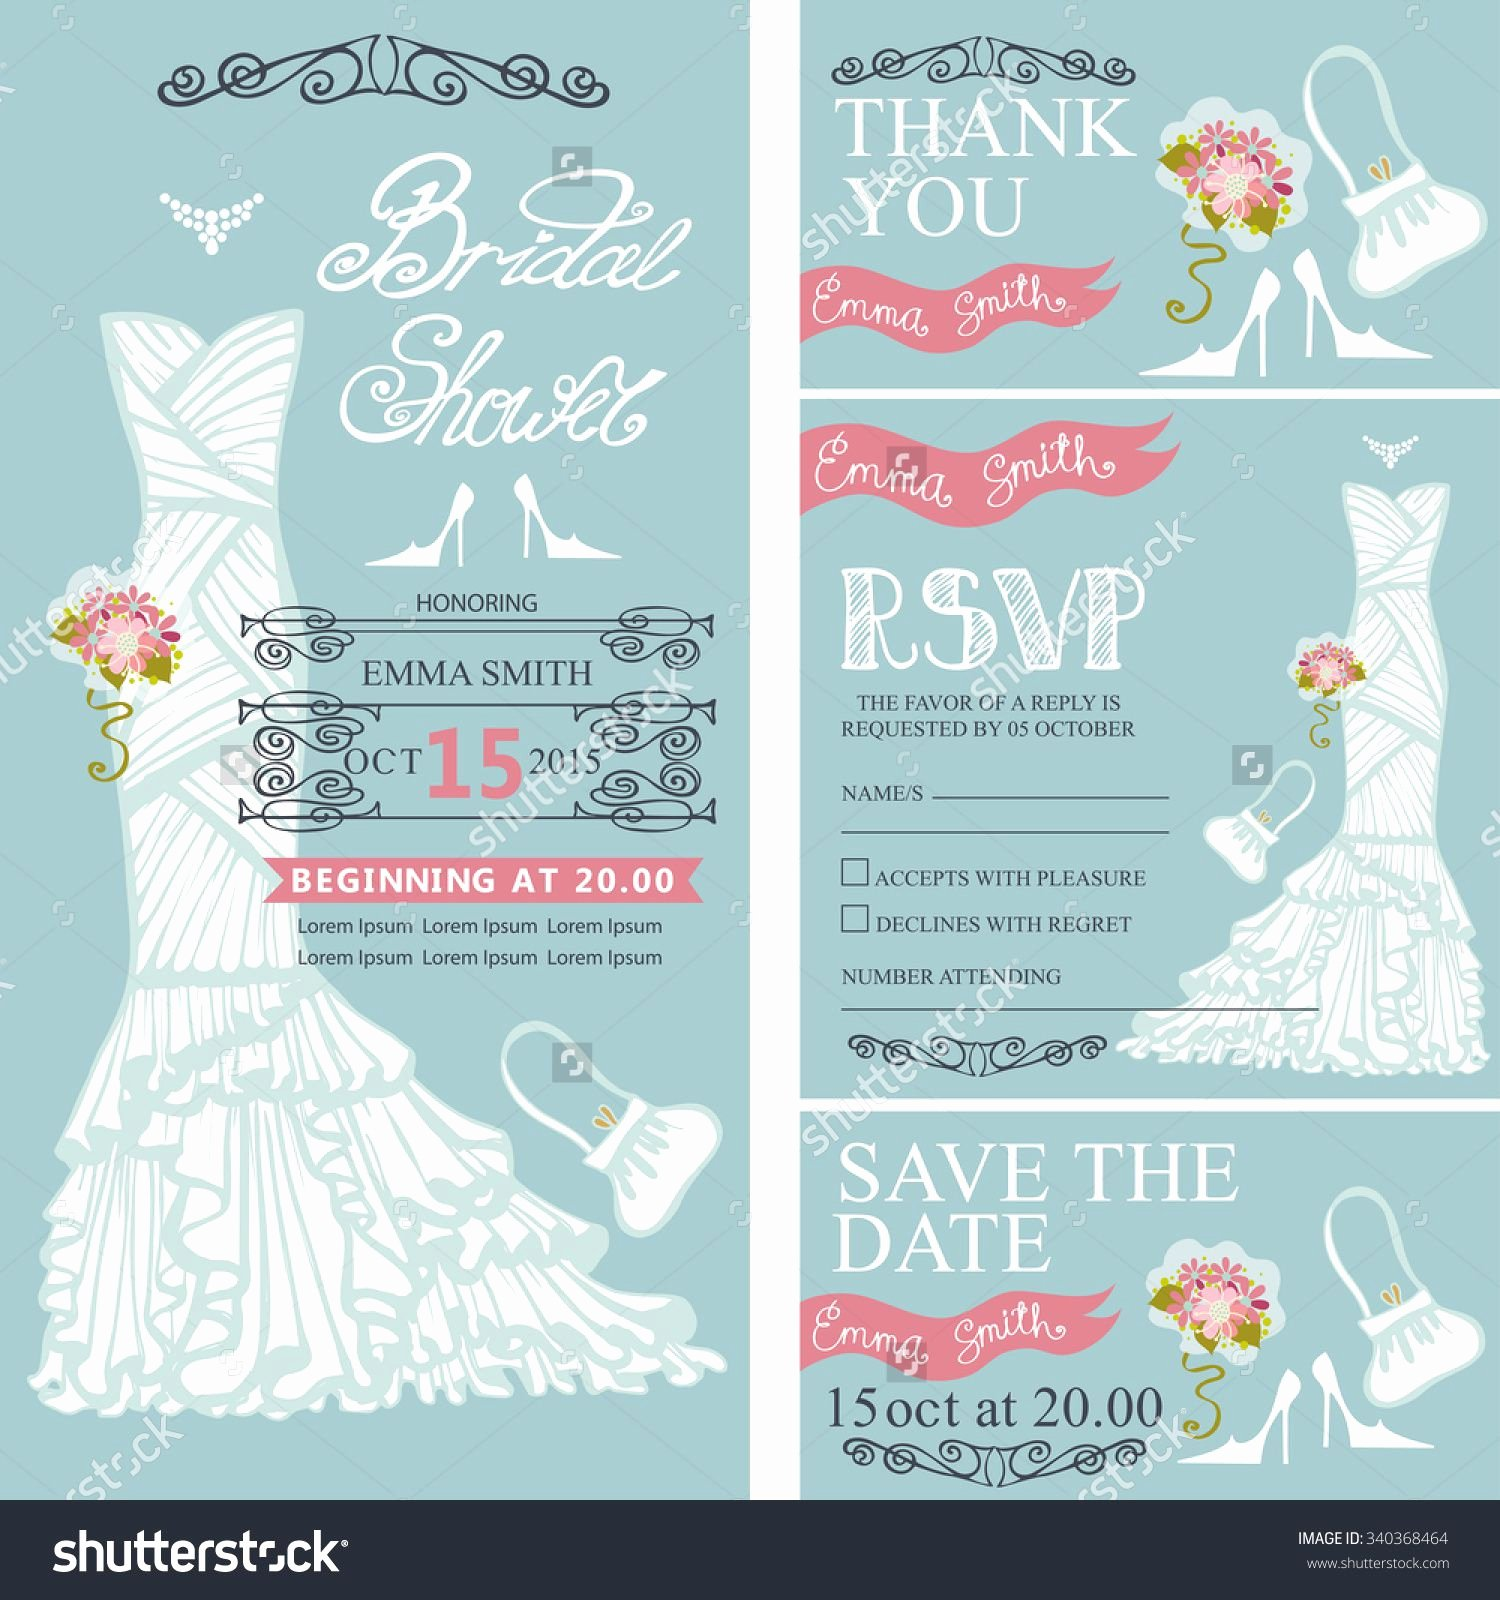 Wedding Shower Invitation Wedding Shower Invitations